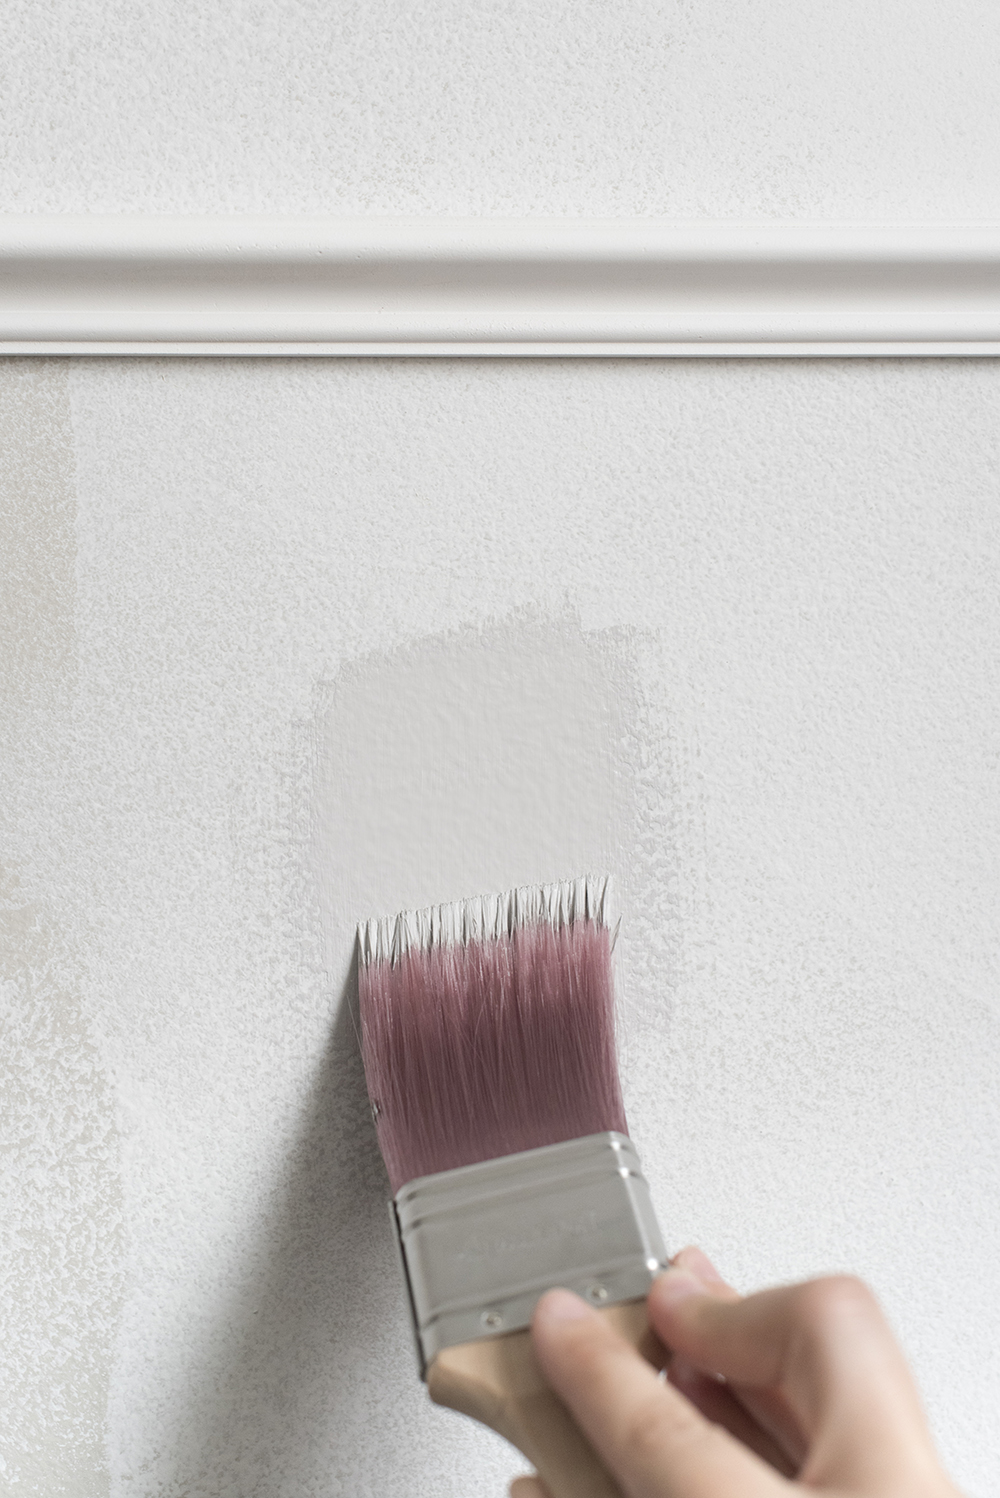 10 Pro Painting Tips (+ A Giveaway) - roomfortuesday.com